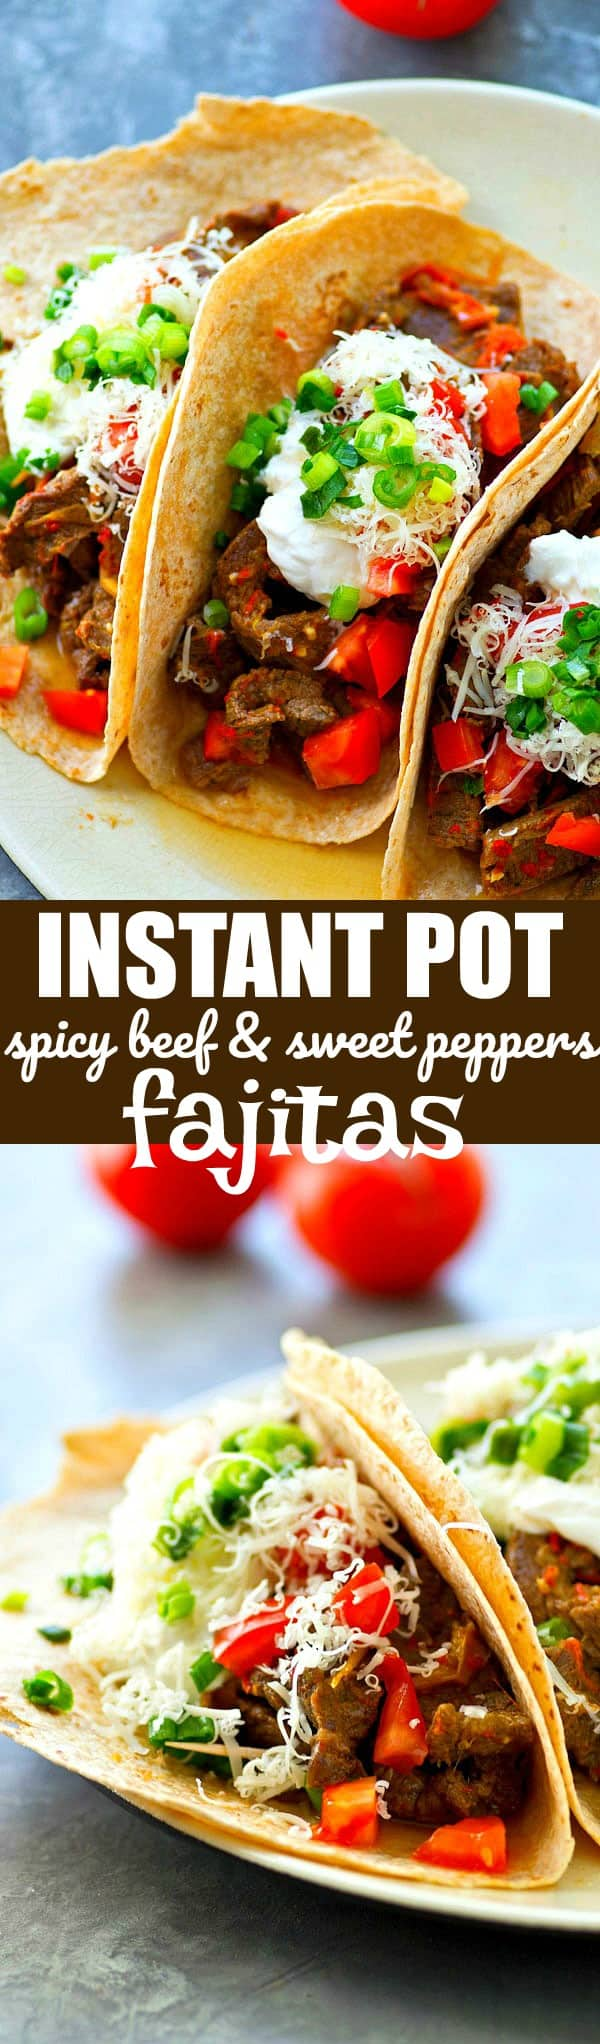 Made in under 25 minutes and incredibly flavorful and tender, these instant pot spicy beef and sweet peppers fajitas are so easy and so good, they'll instantly become a dinner regular!